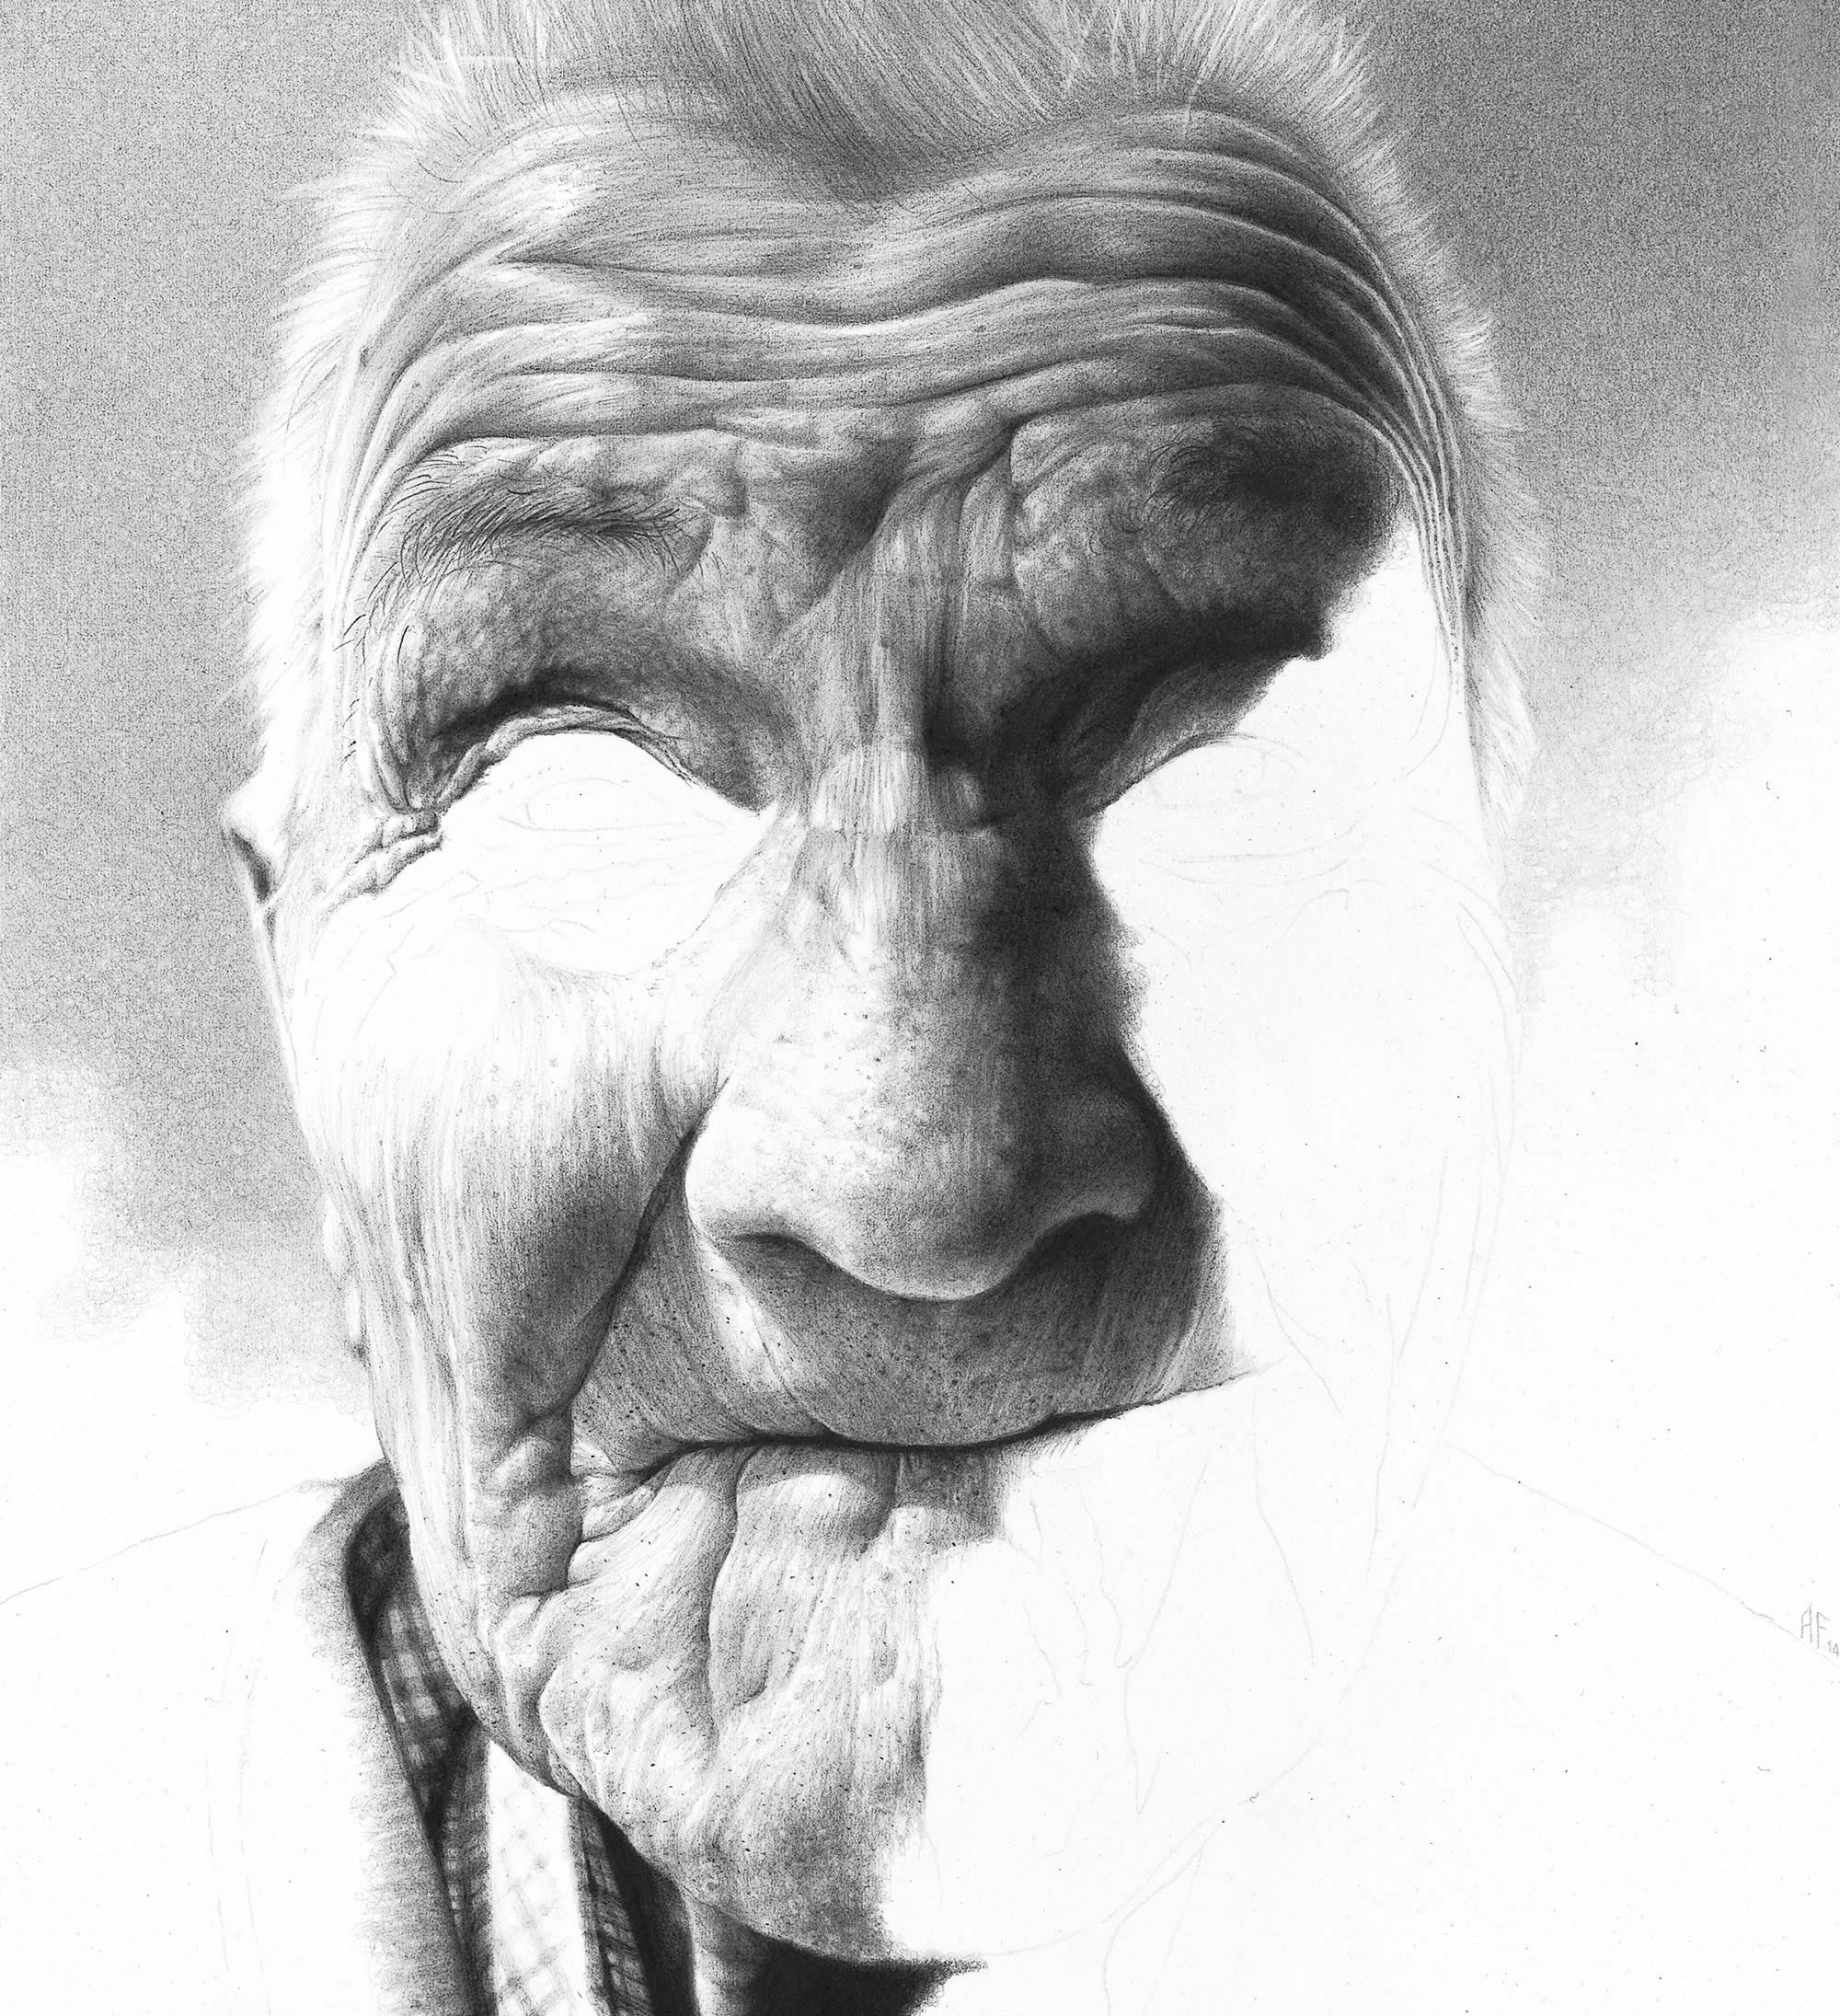 pencil portrait of elderly man by antonio finelli